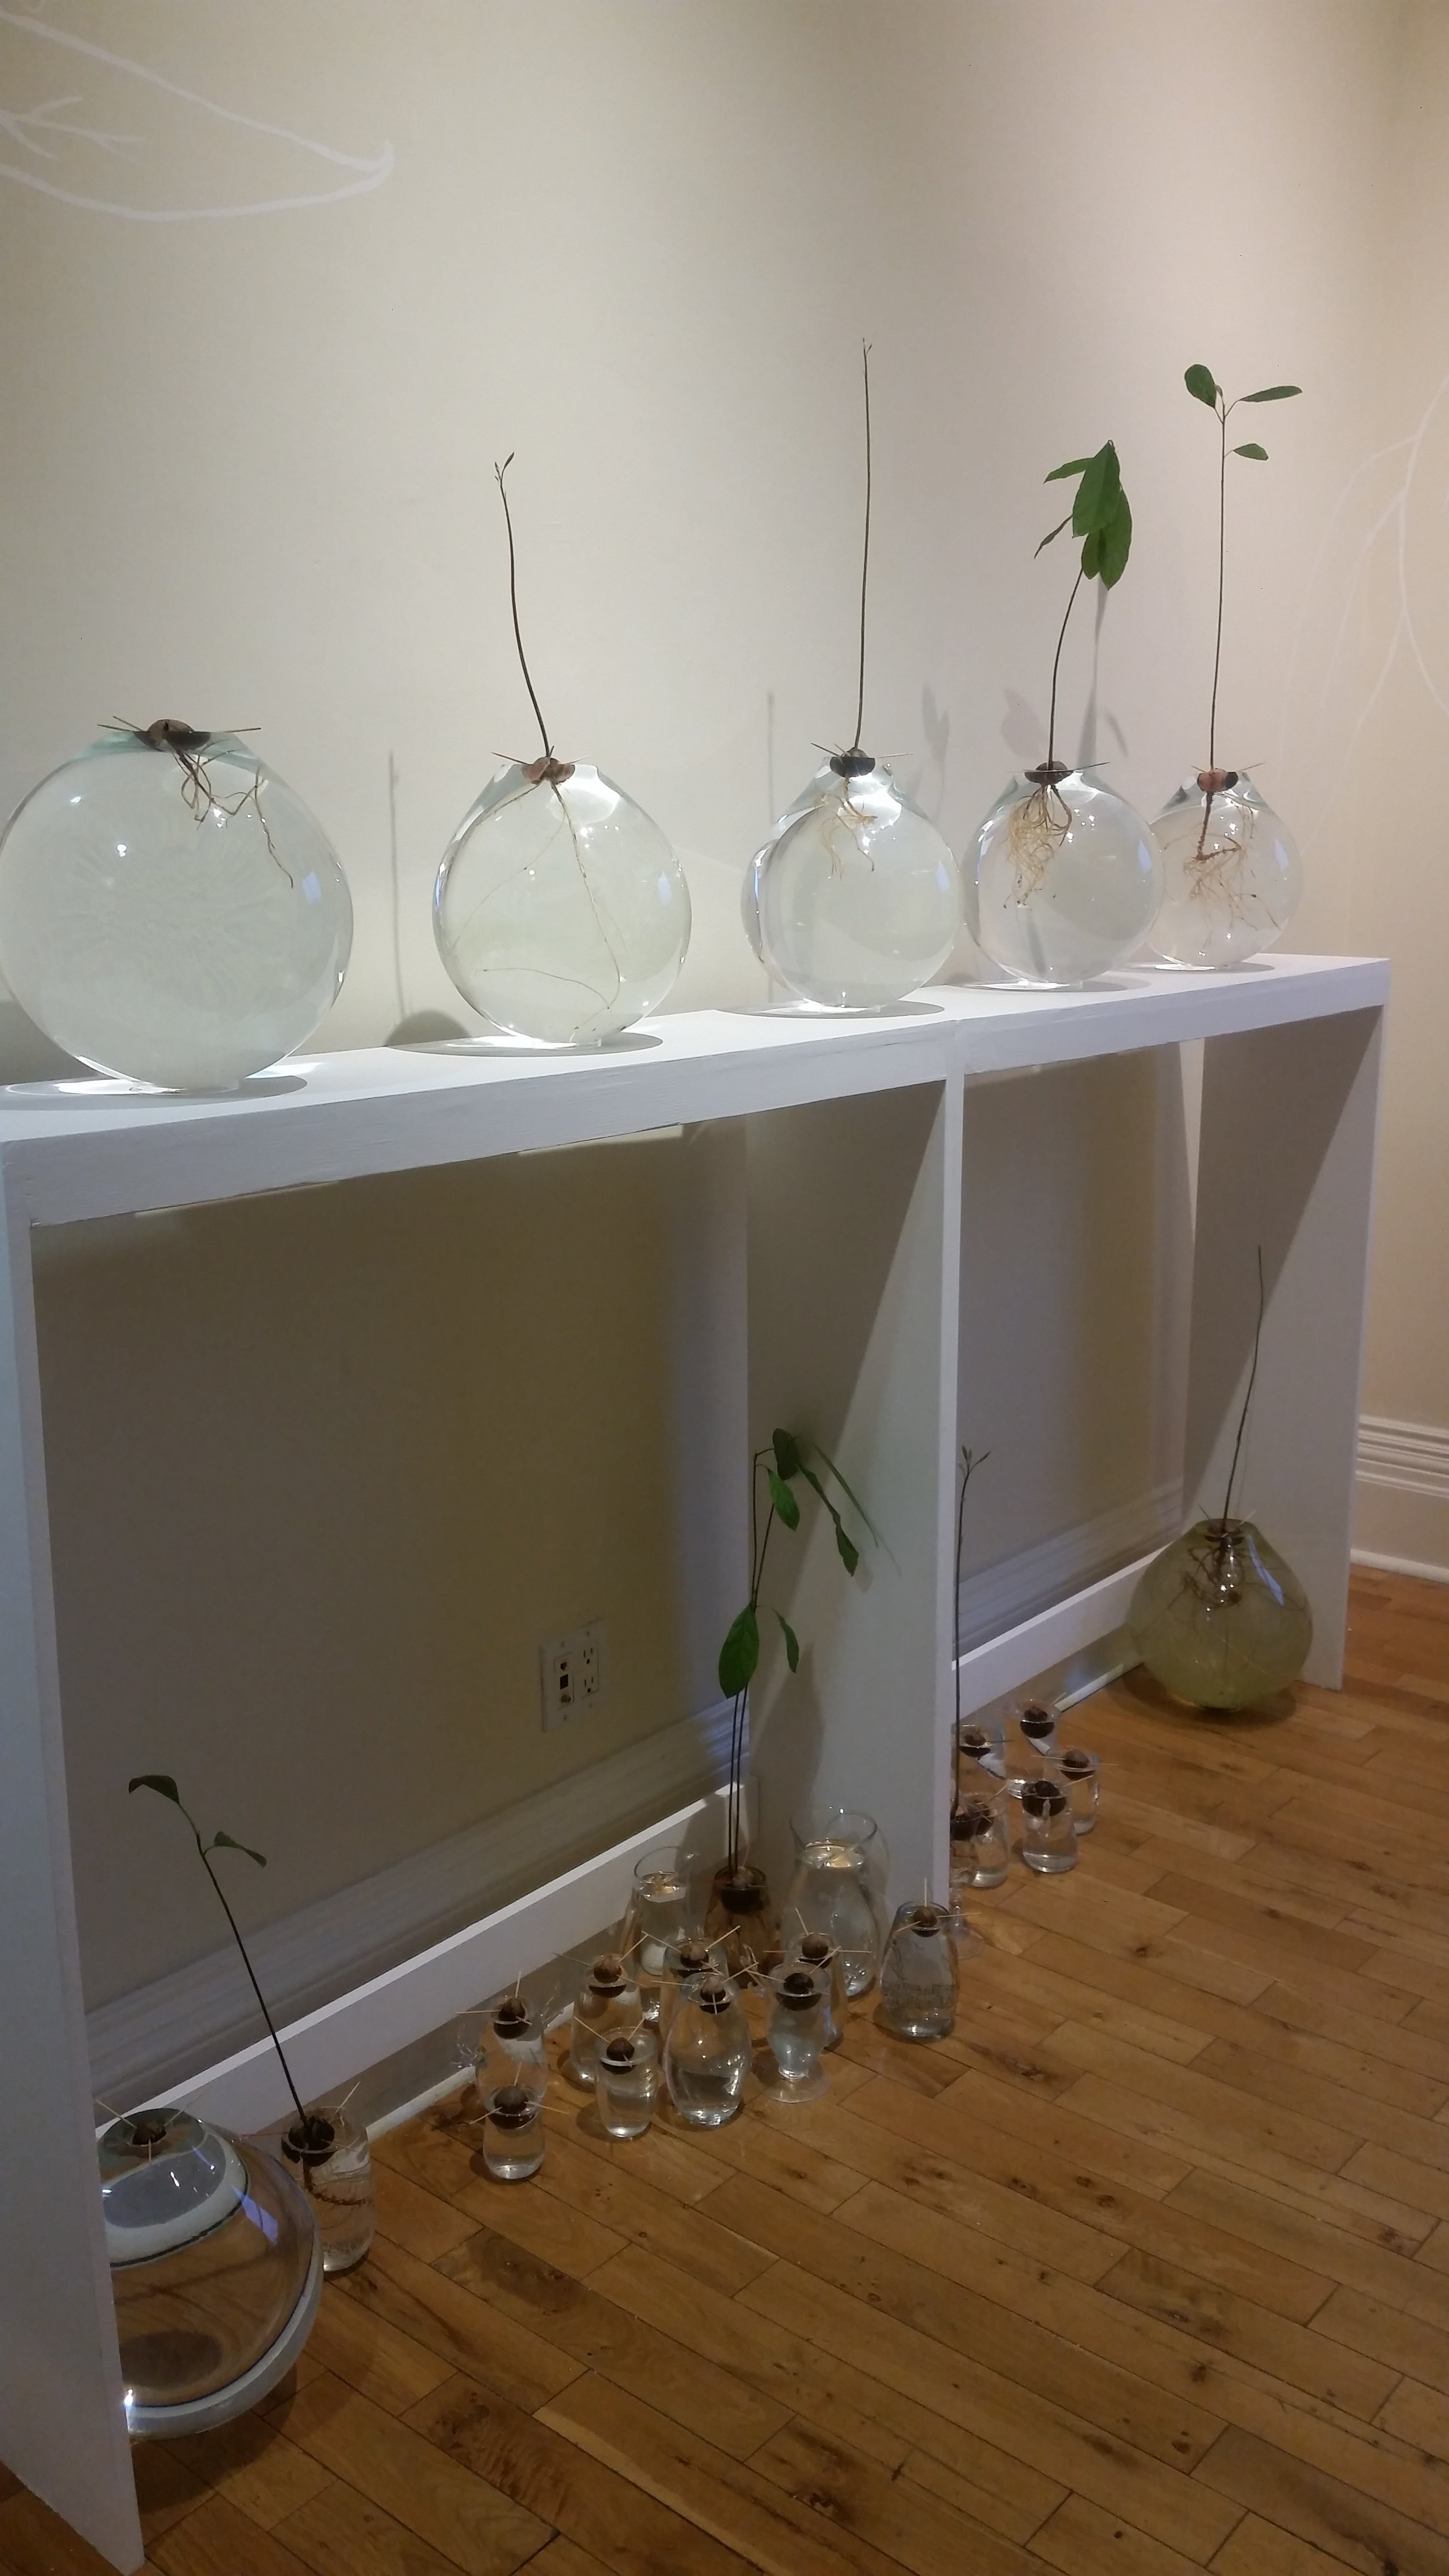 """""""The Avocado Room""""  by glass artist and avocado enthusiast Becky Lauzon"""